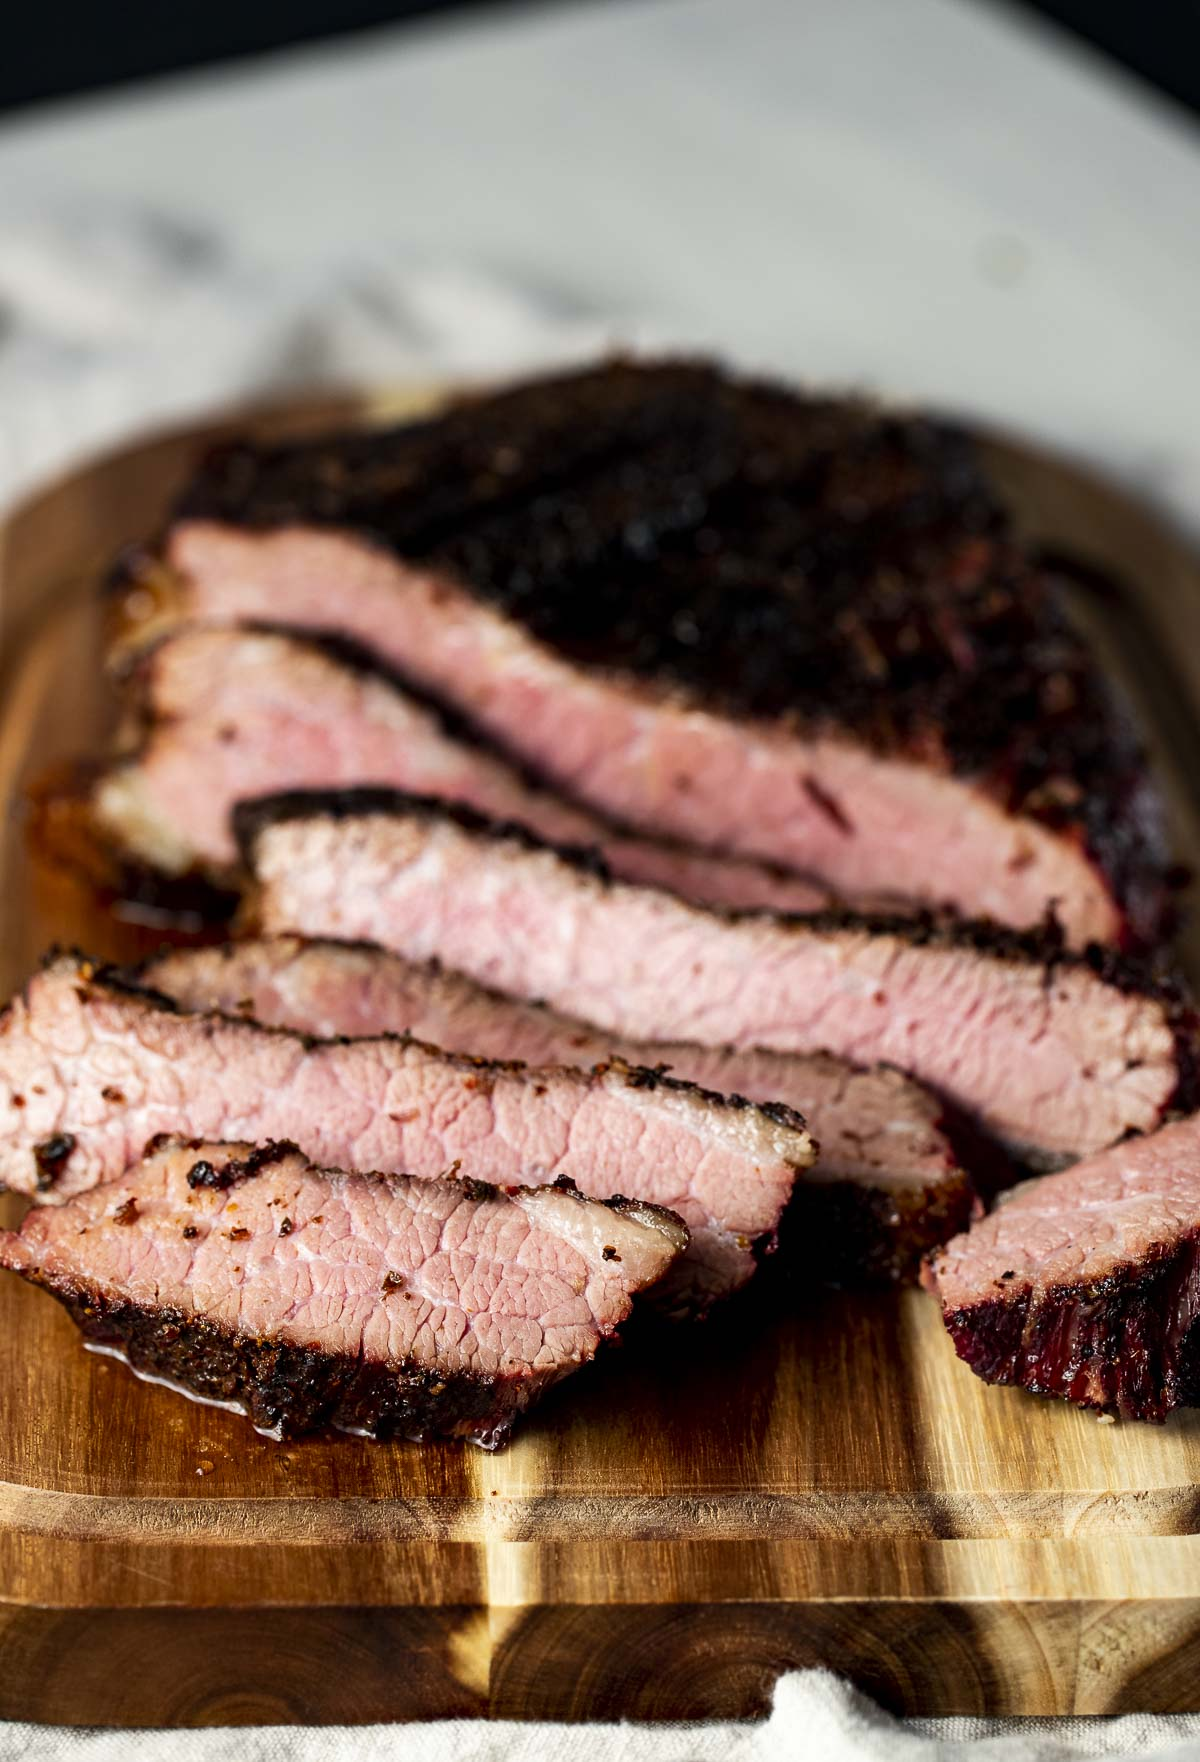 Side view of sous vide brisket carved into slices.